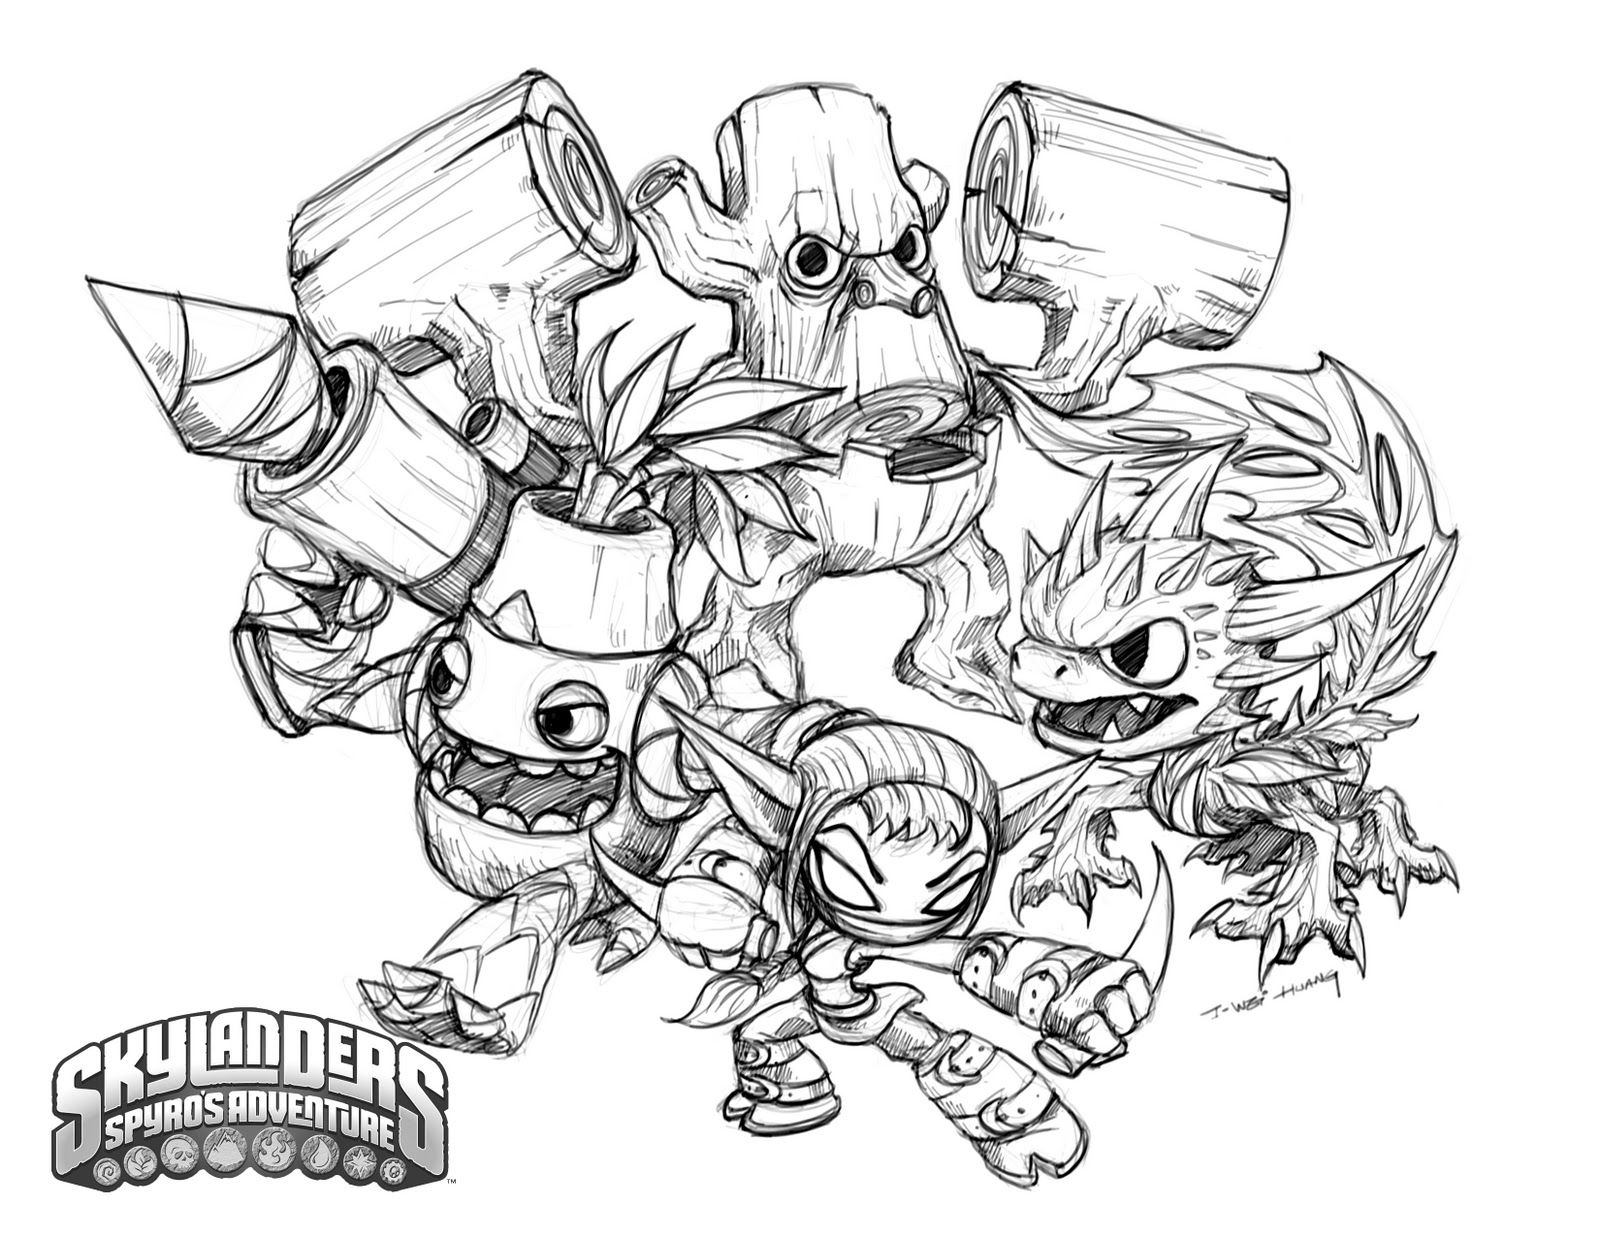 Coloring Pages From Skylanders | CrabFu Blog: Skylanders Speed Drawing & Coloring Pages